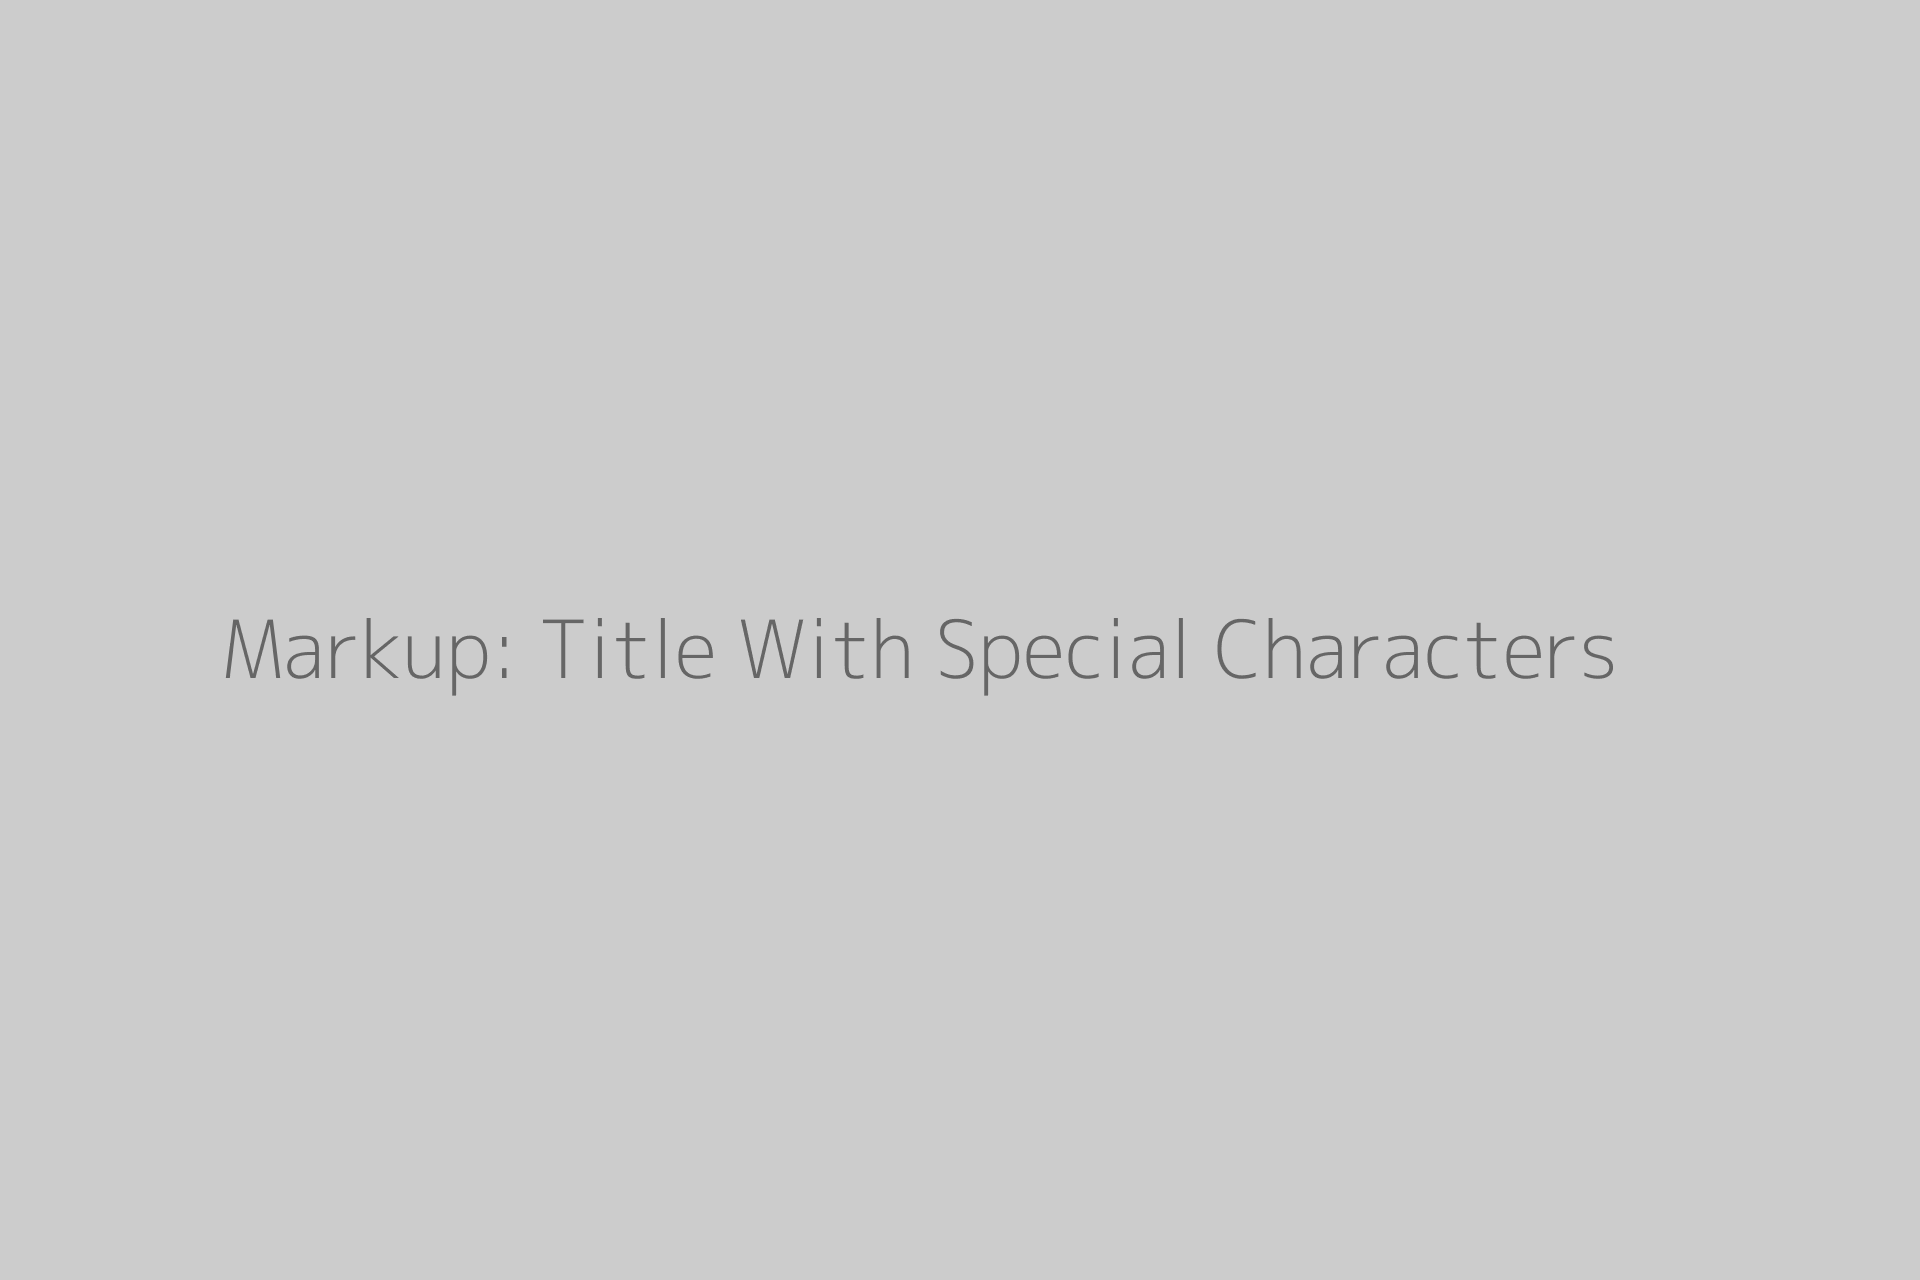 Markup: Title With Special Characters